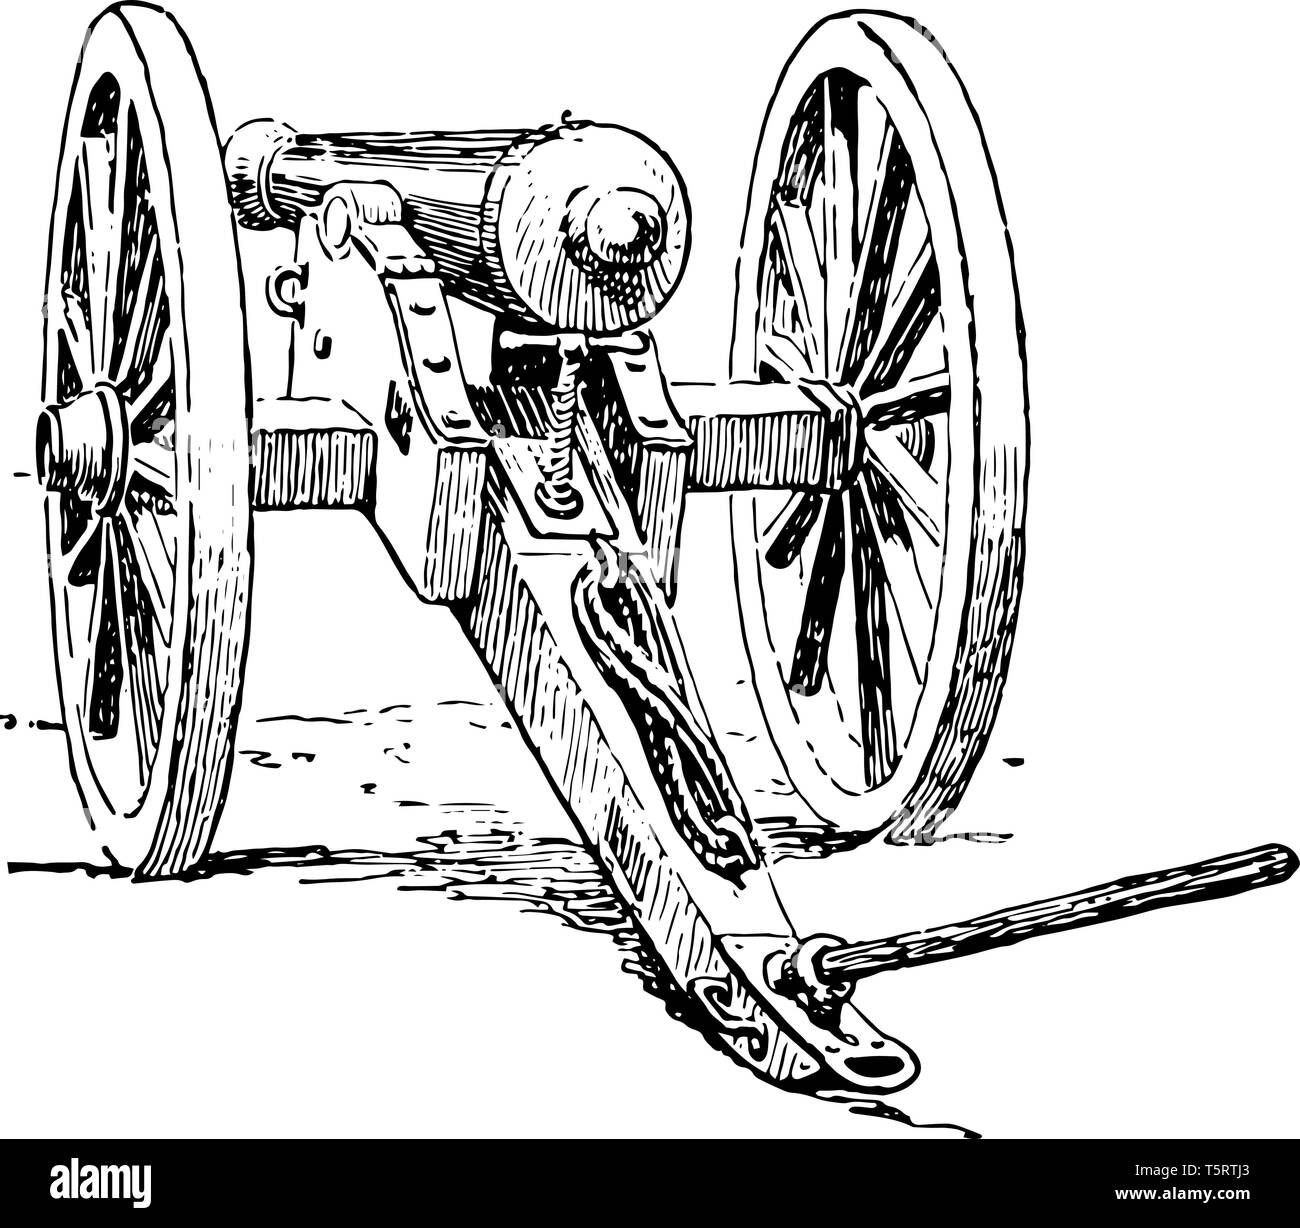 Cannon which is a movable canon on wheels, vintage line